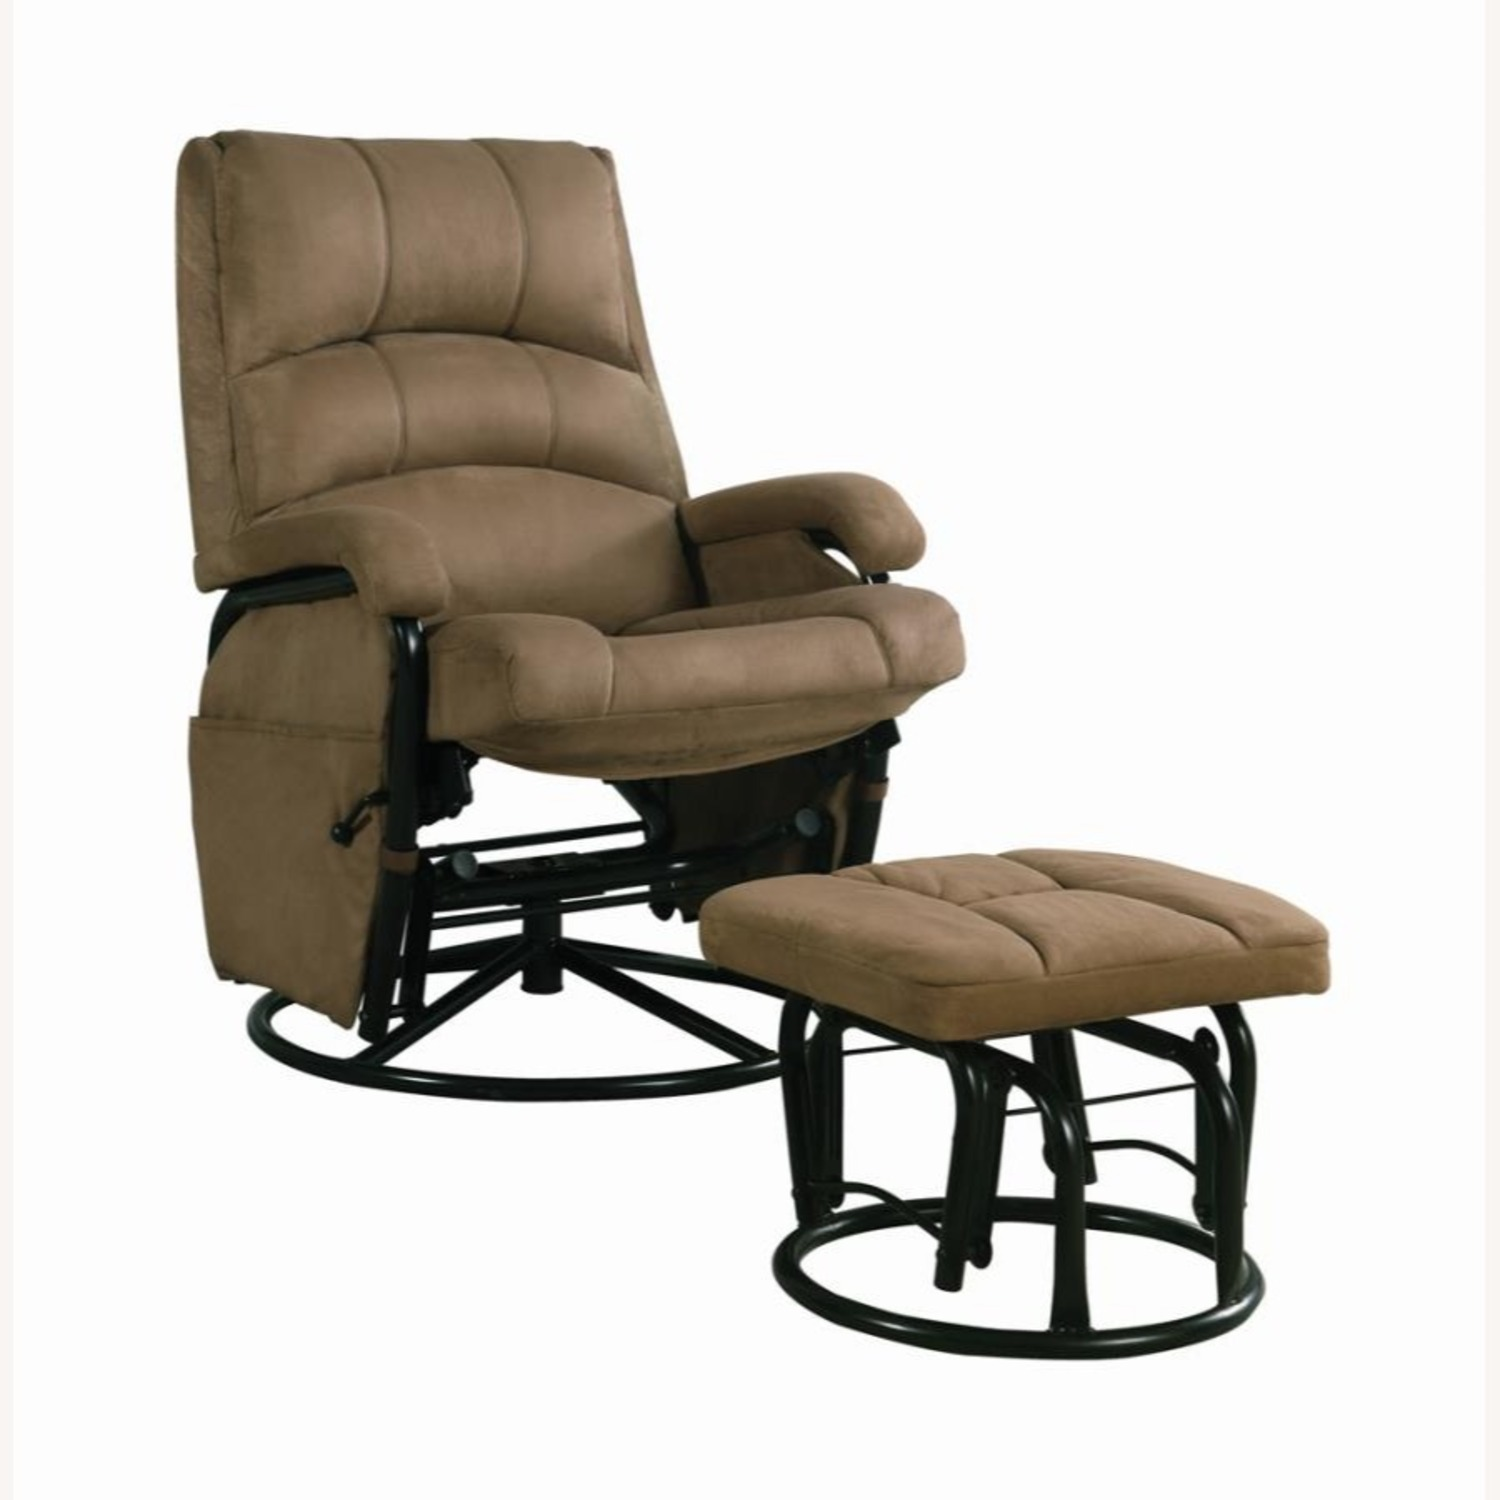 Glider W/ Ottoman In Brown Microfiber Upholstery - image-0